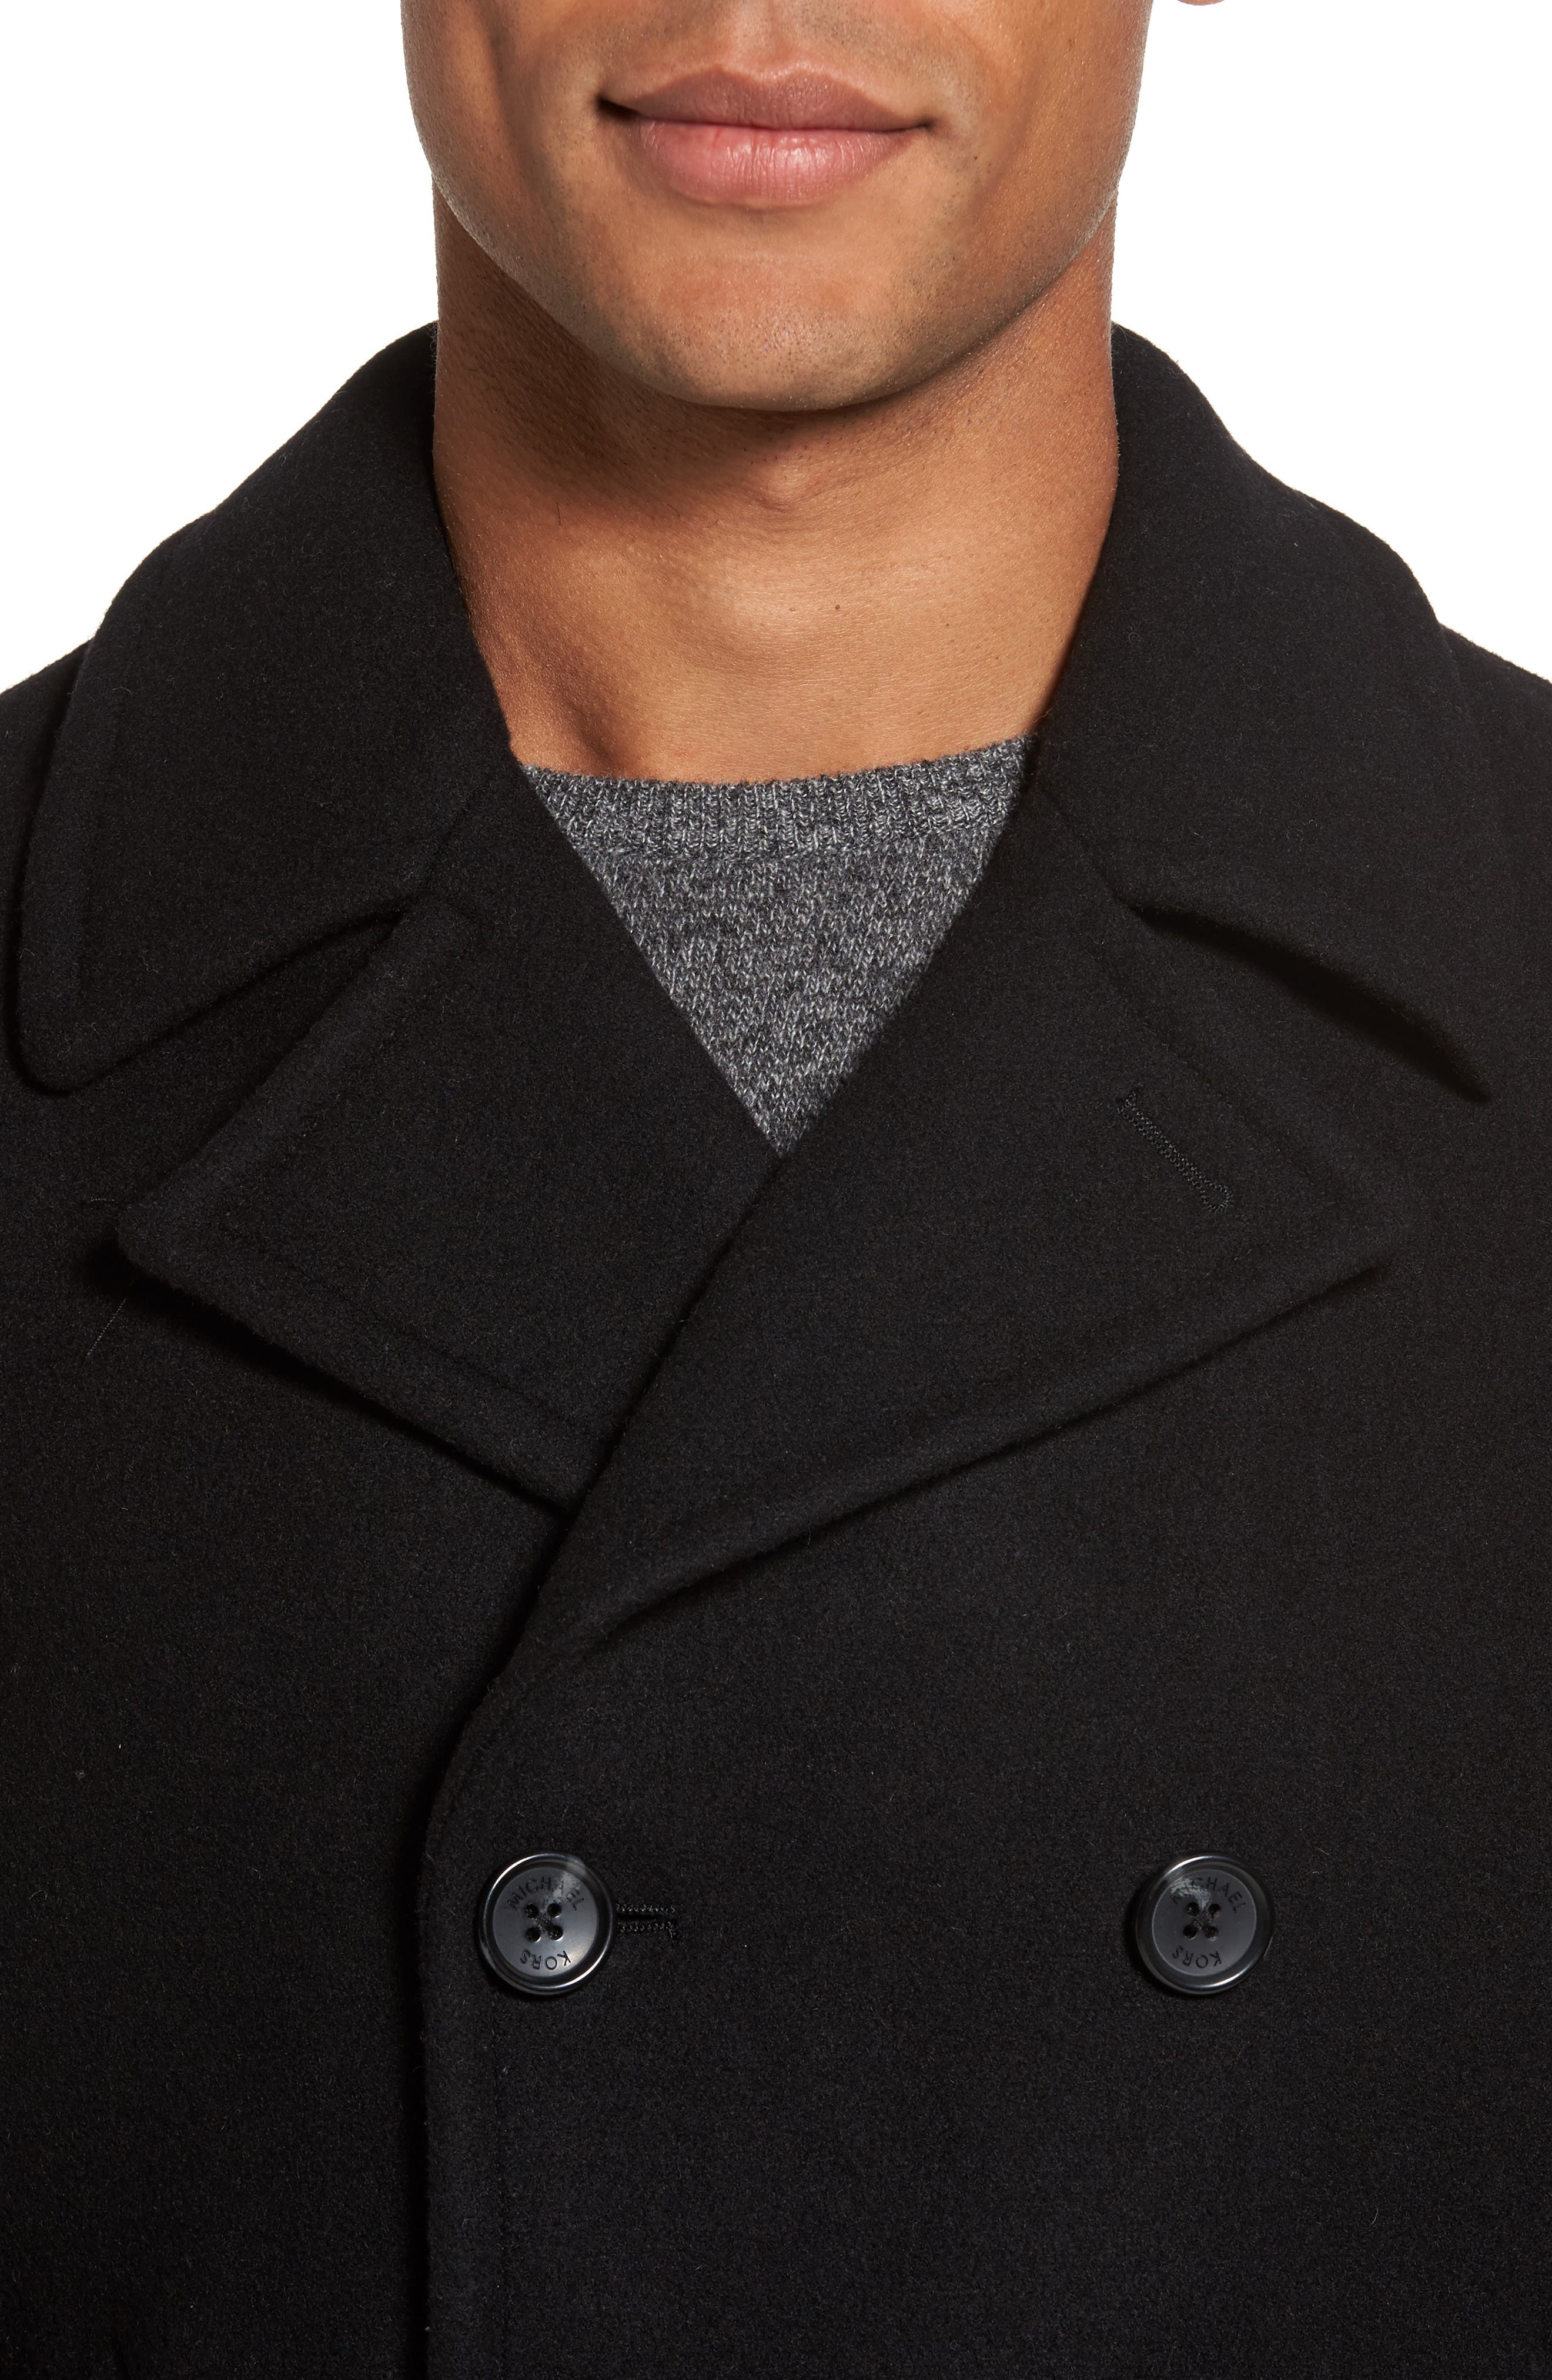 Wool Blend Double Breasted Peacoat,                             Alternate thumbnail 115, color,